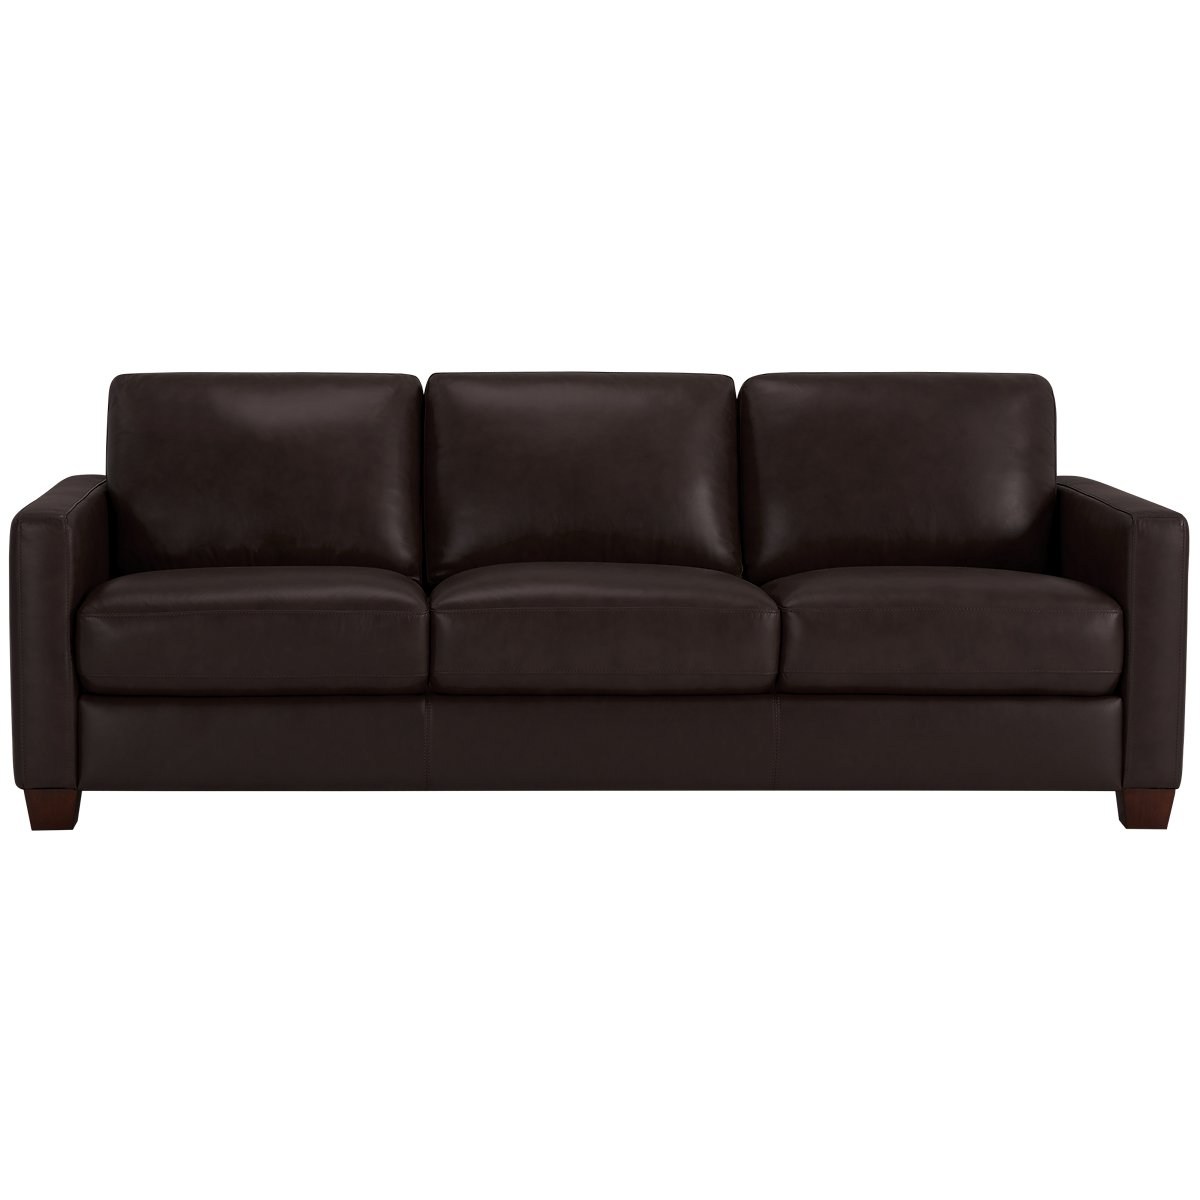 Dark Brown Leather Sofa Dark Brown Leather Couch Wayfair